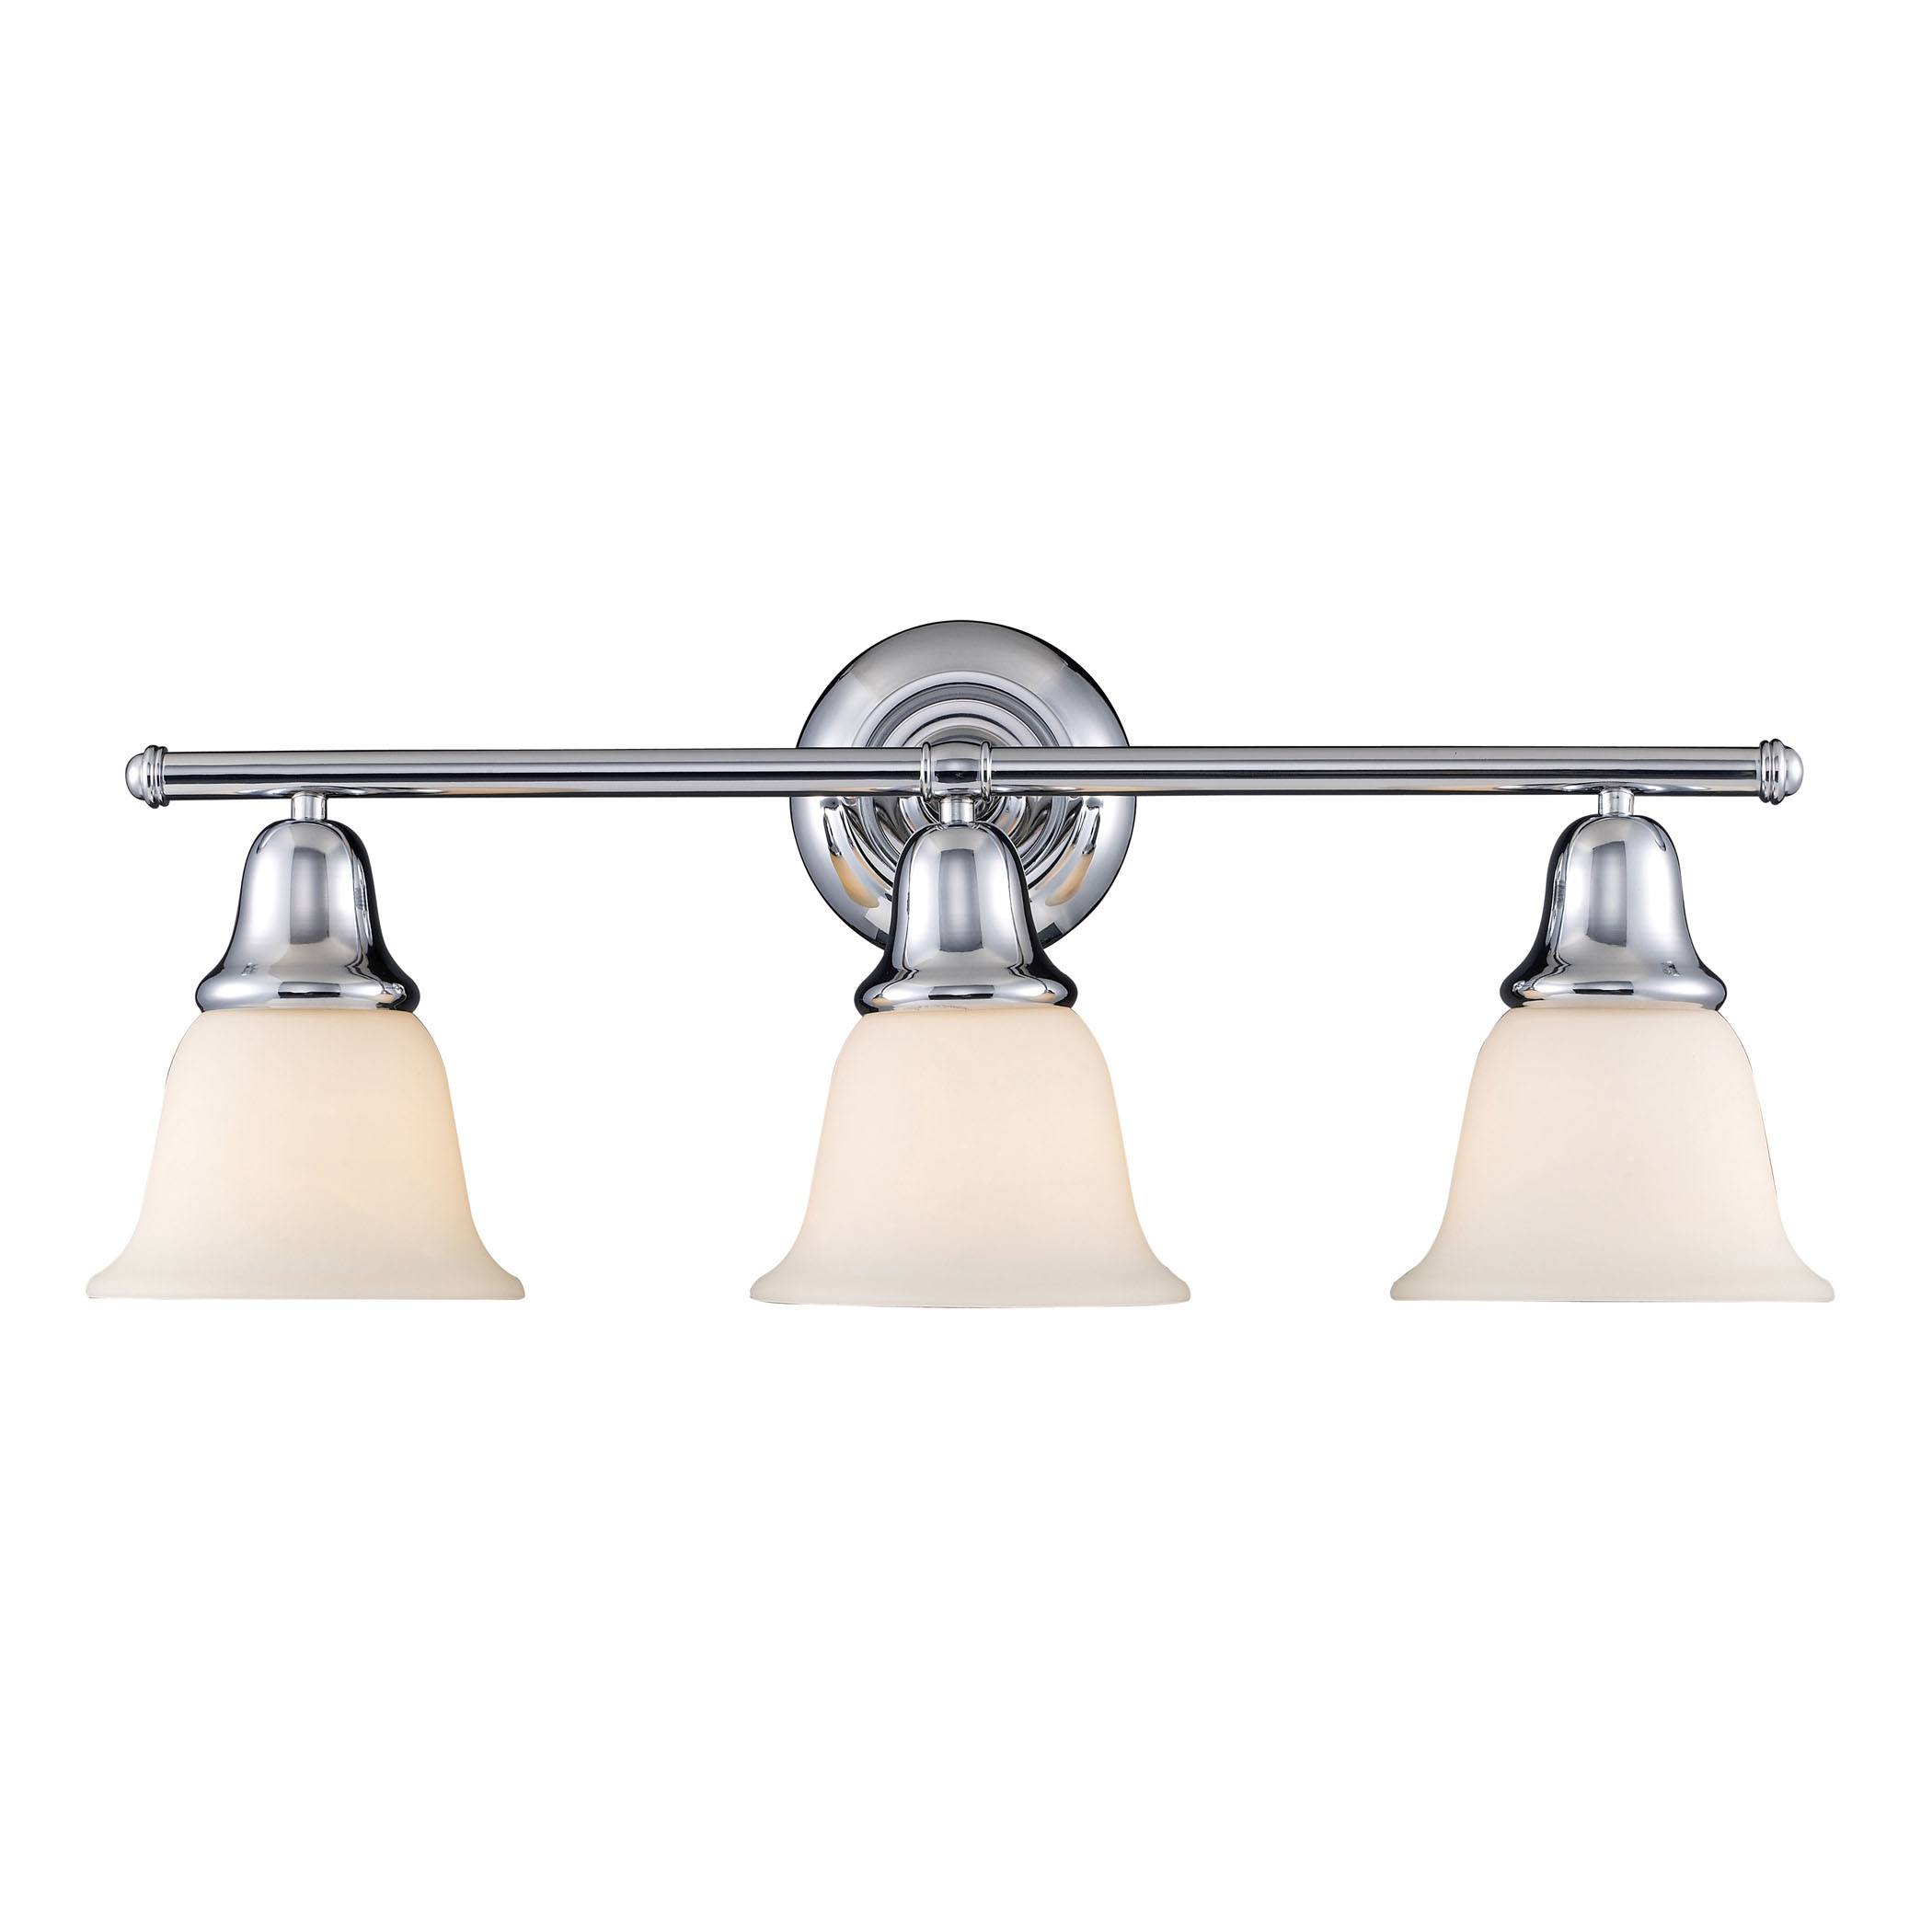 Berwick 3-Light Sconce in Polished Chrome